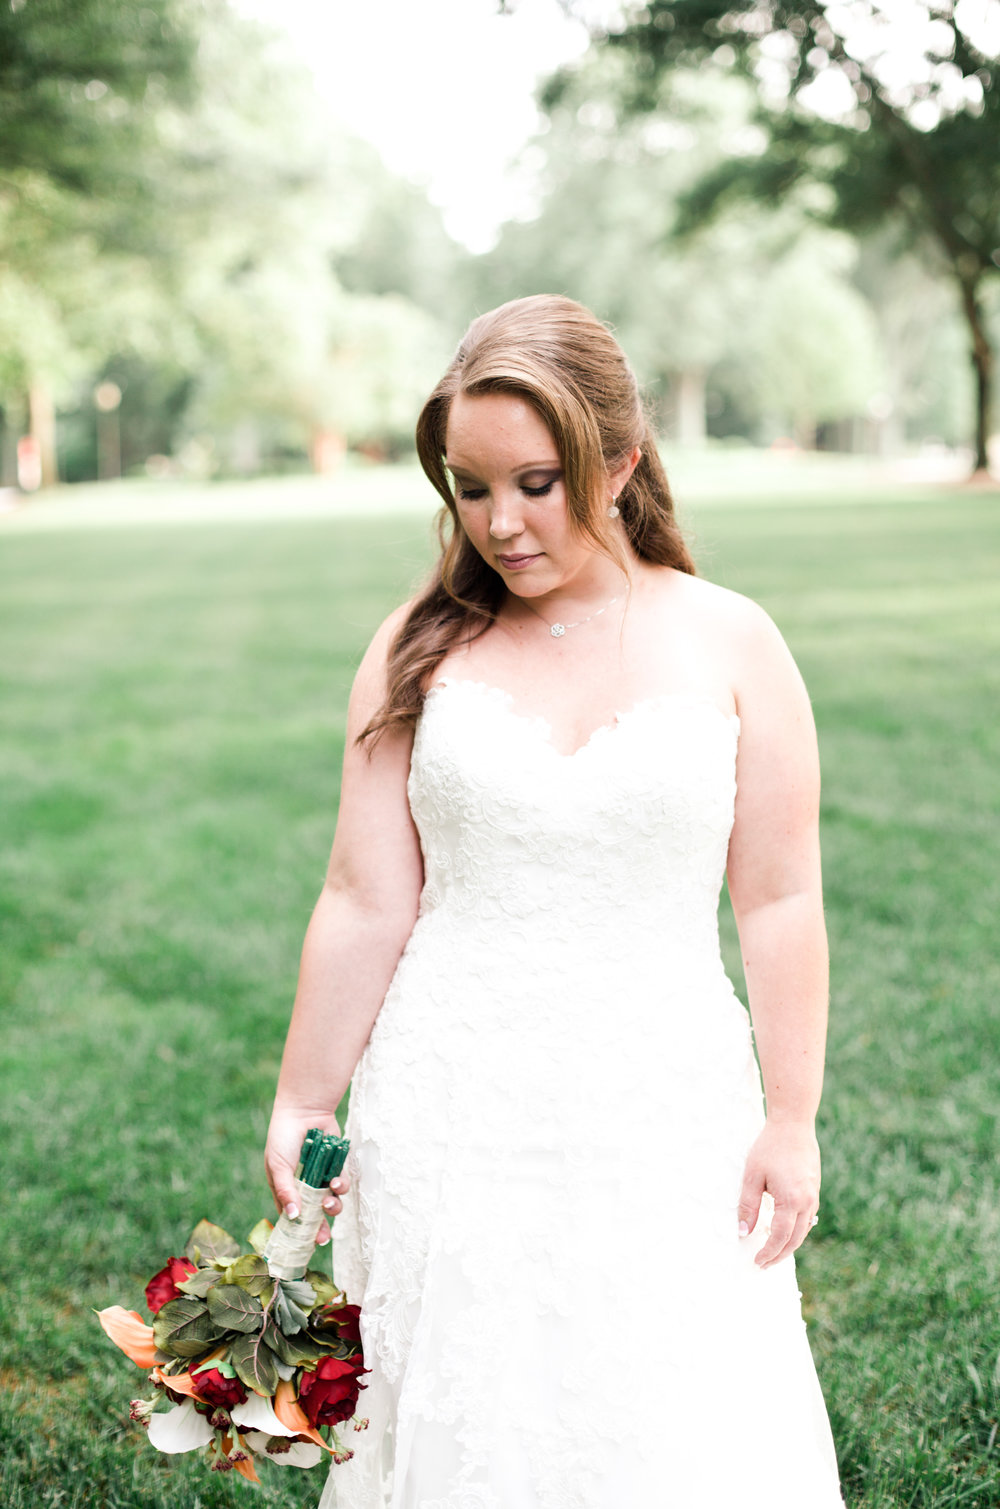 gabbie_bridal_poured_out_photography-45.jpg